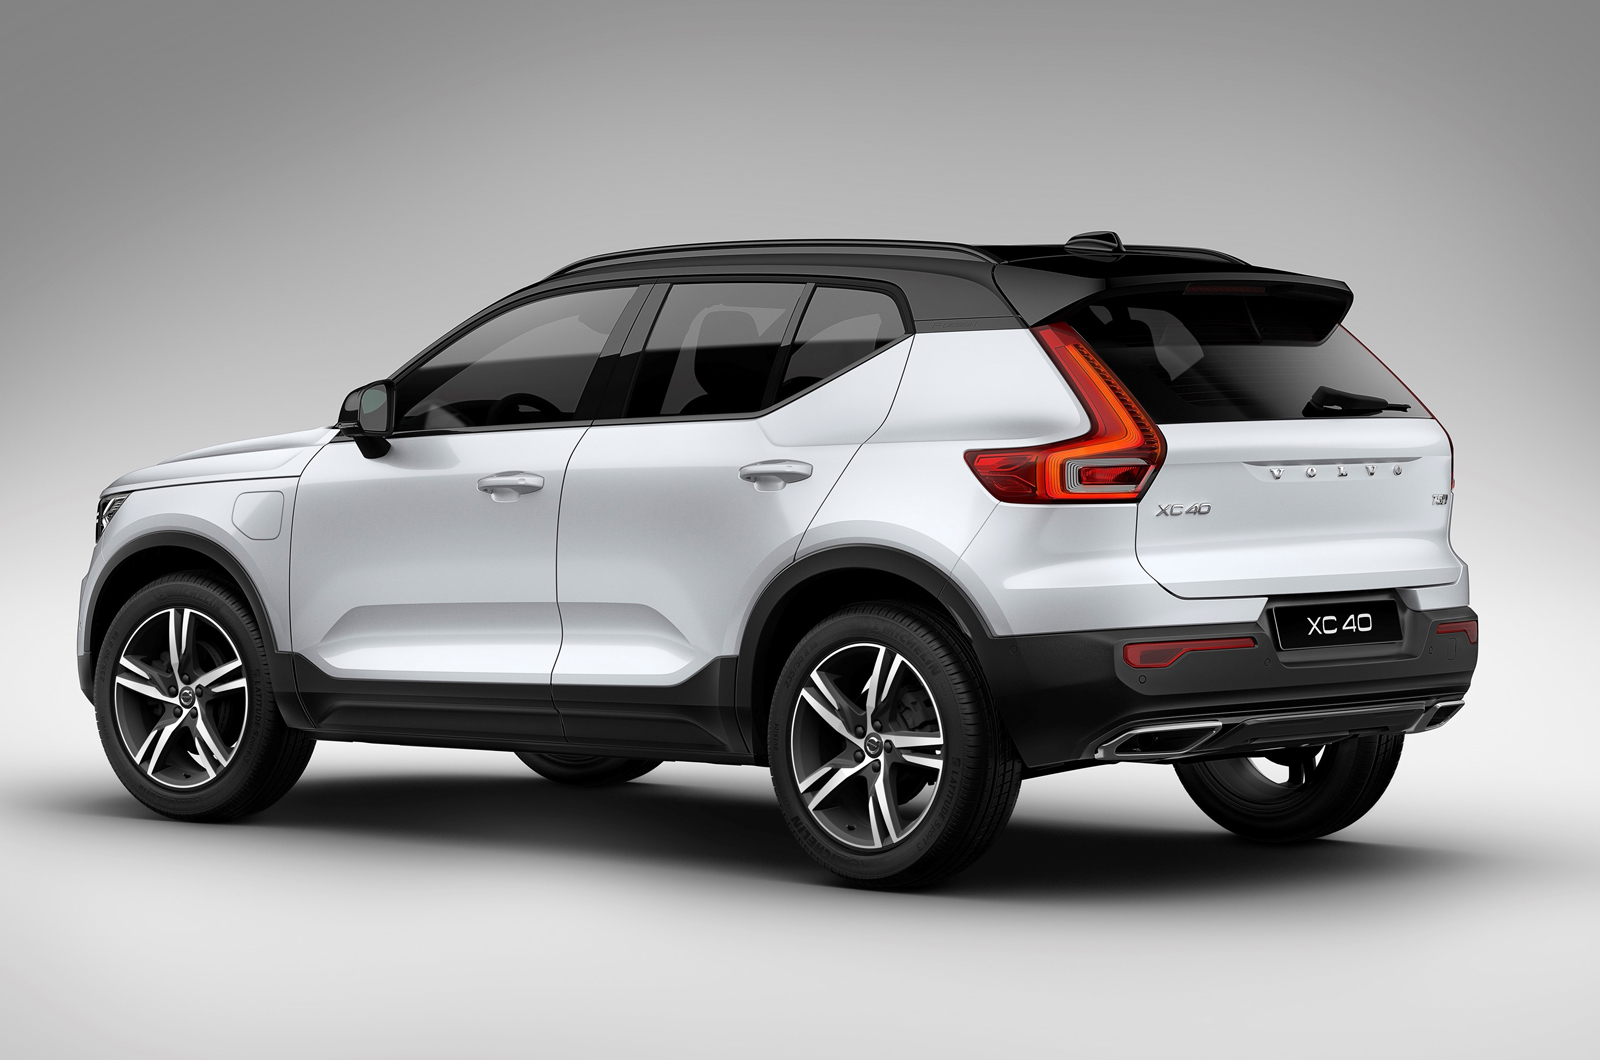 volvo xc40 t5 twin engine plug in hybrid revealed autocar. Black Bedroom Furniture Sets. Home Design Ideas